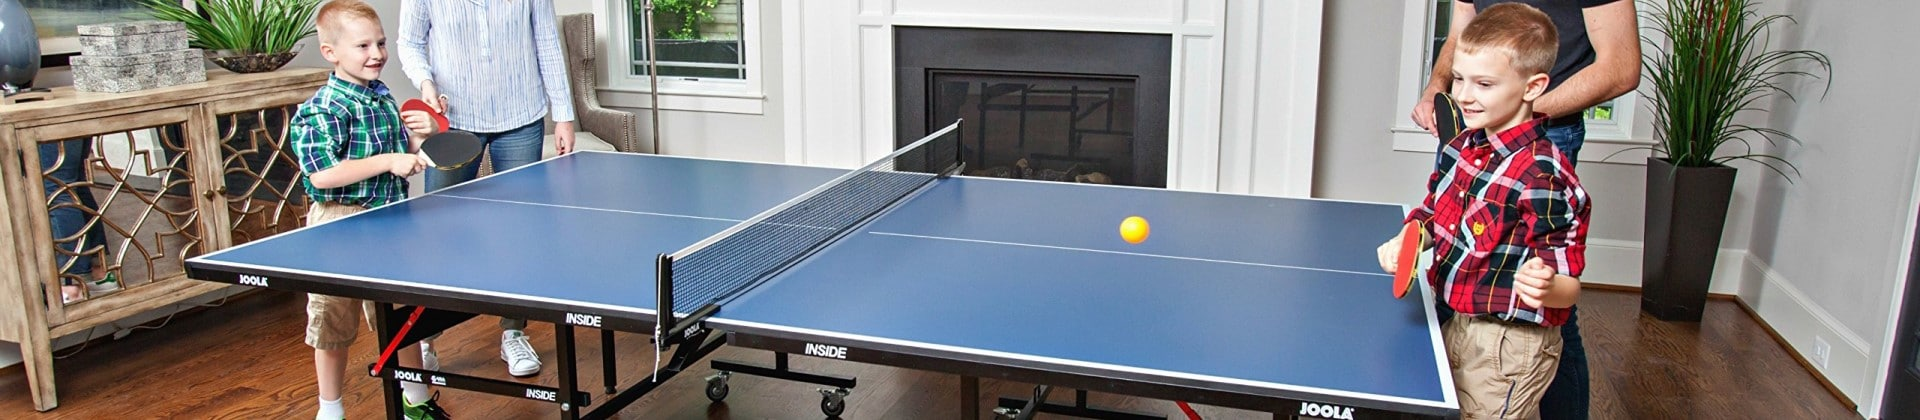 Best Ping Pong Tables Reviewed in Detail